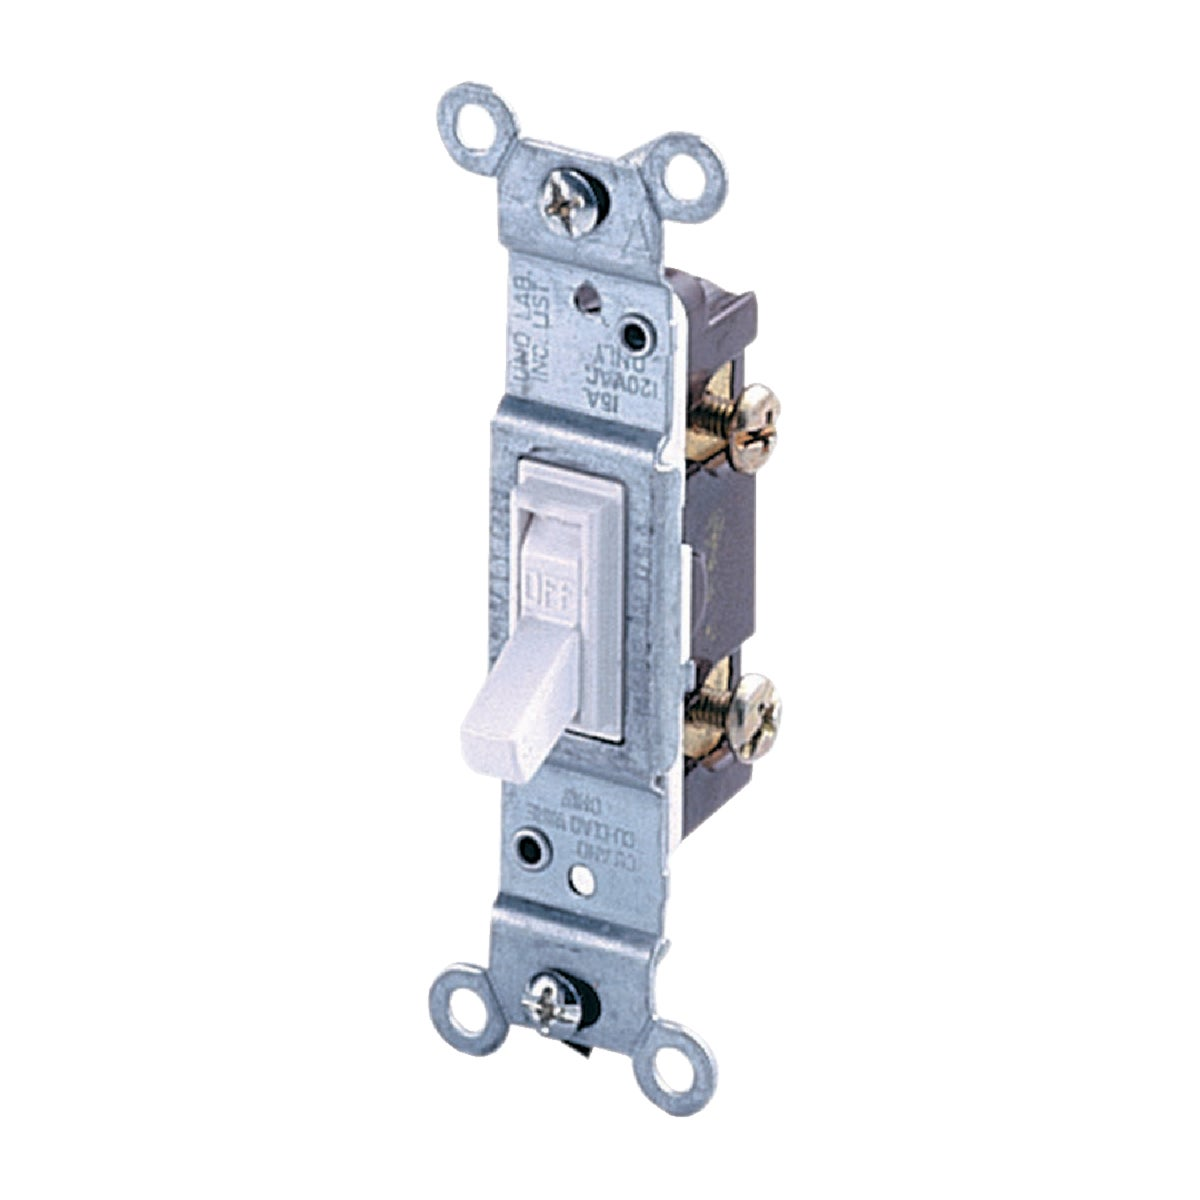 WHT 1POLE SWITCH - 1451WCP by Leviton Mfg Co